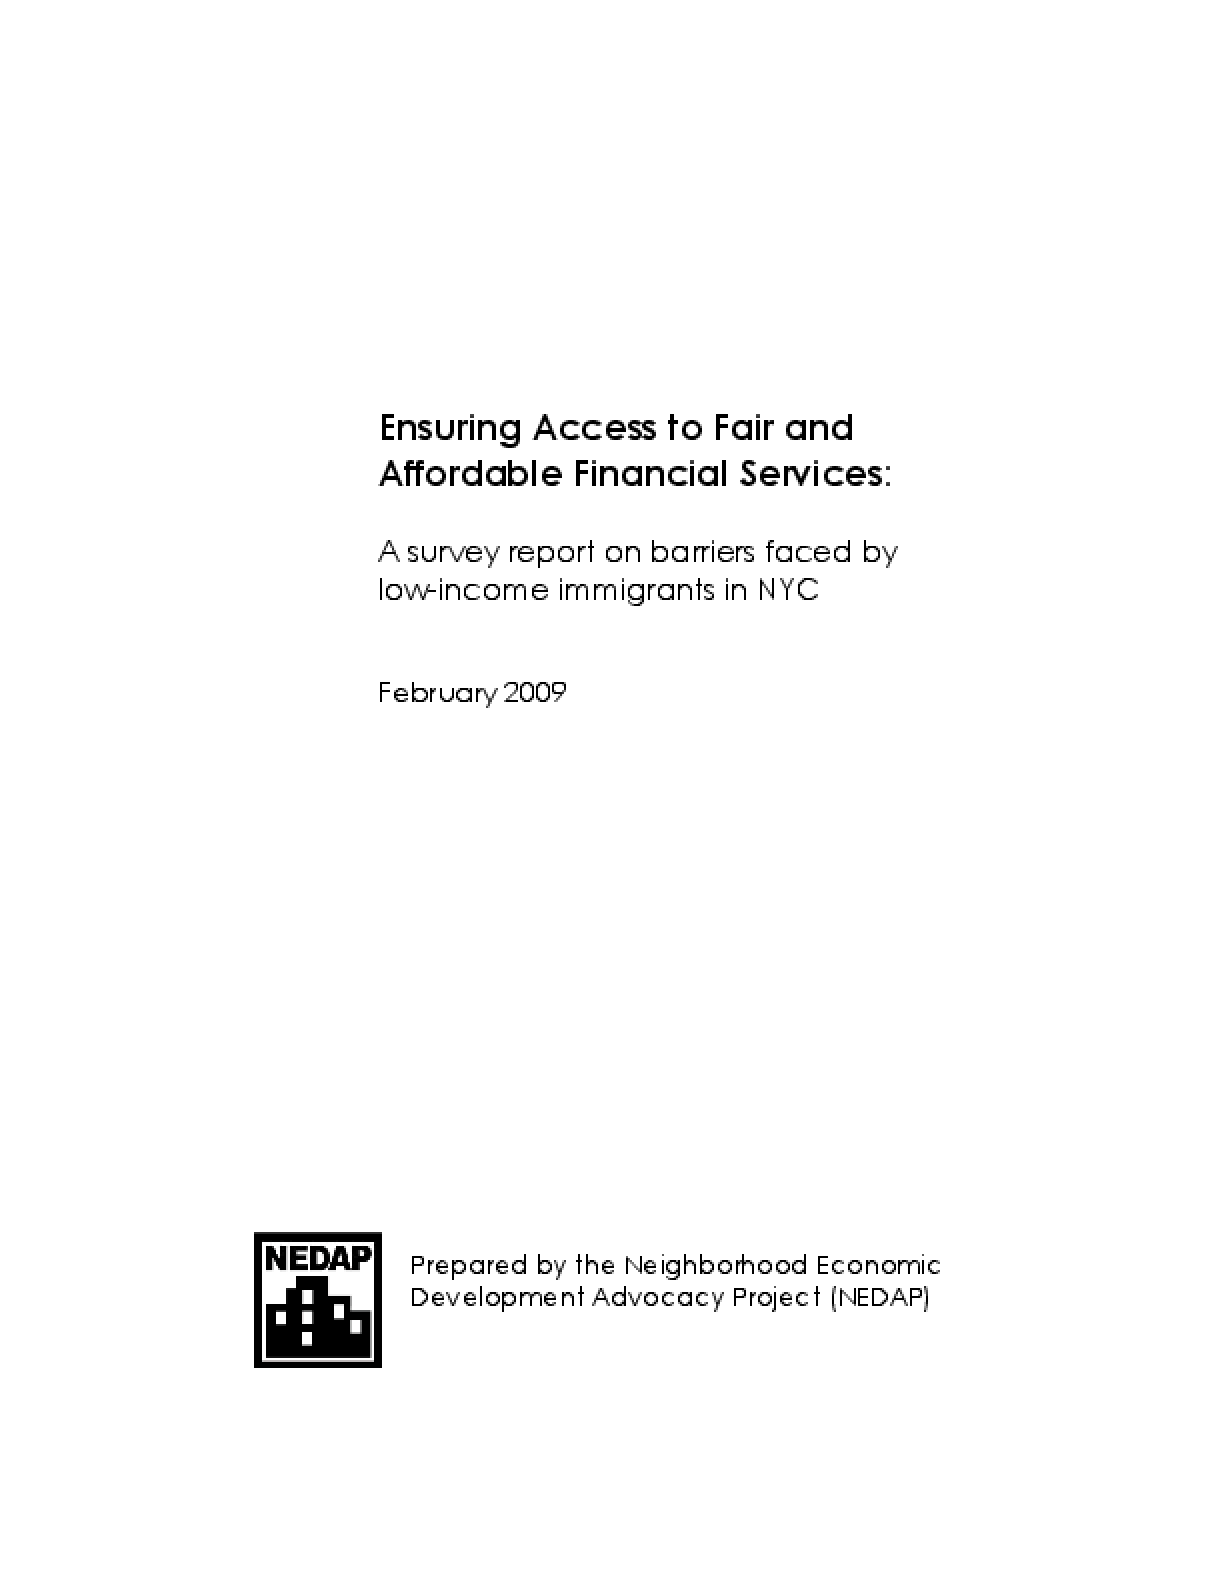 Ensuring Access to Fair and Affordable Financial Services: A survey report on barriers faced by low-income immigrants in NYC